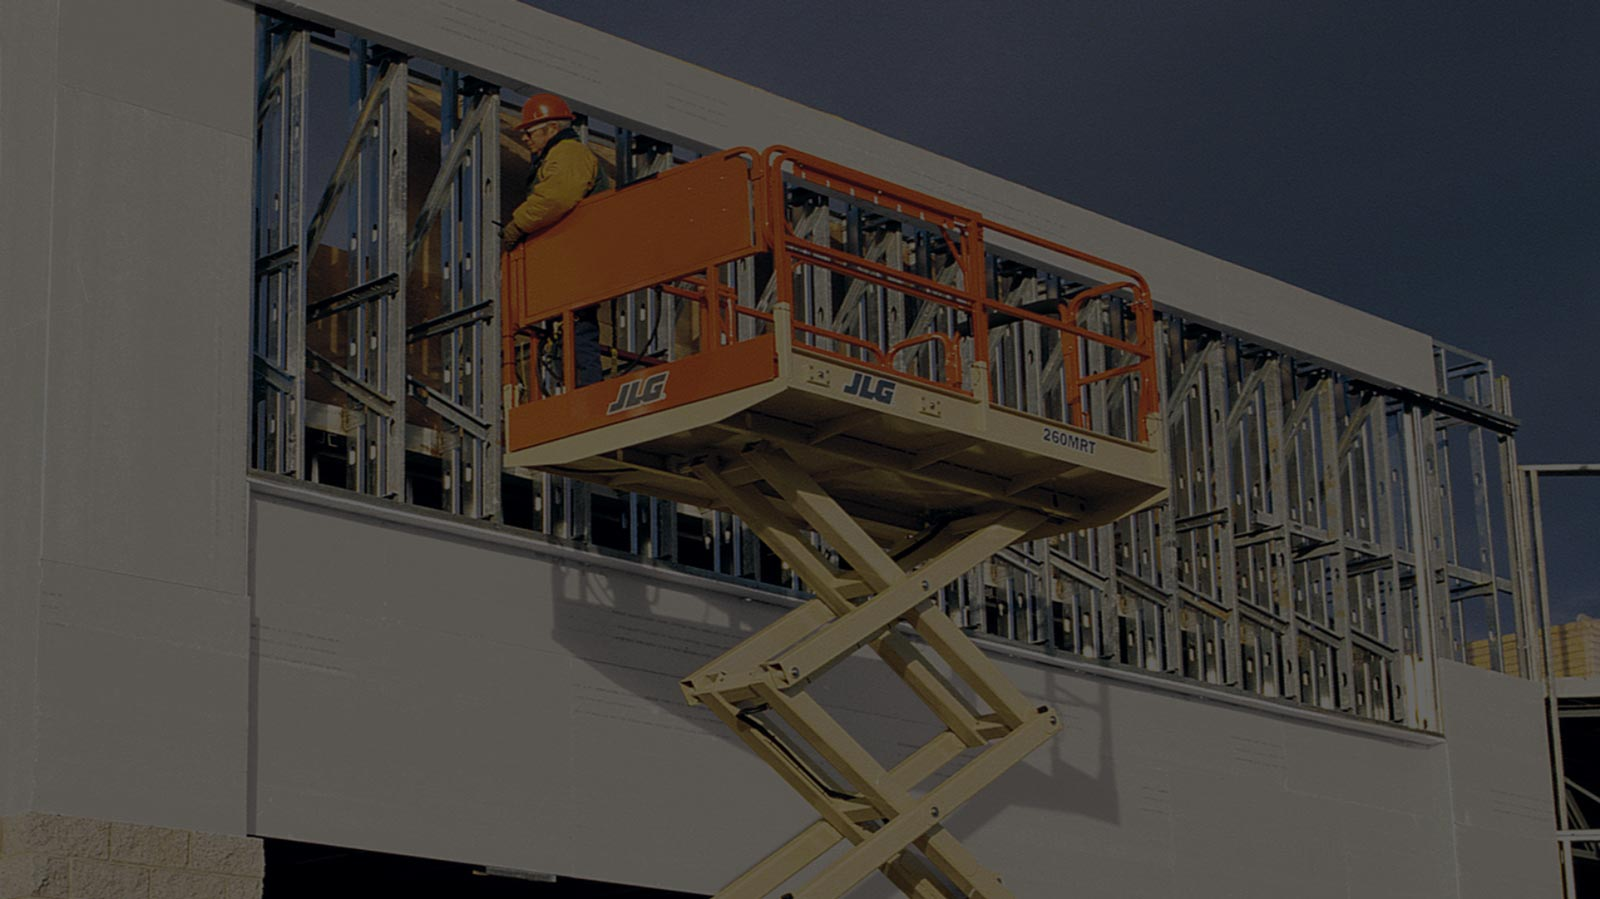 jlg scissor lift background